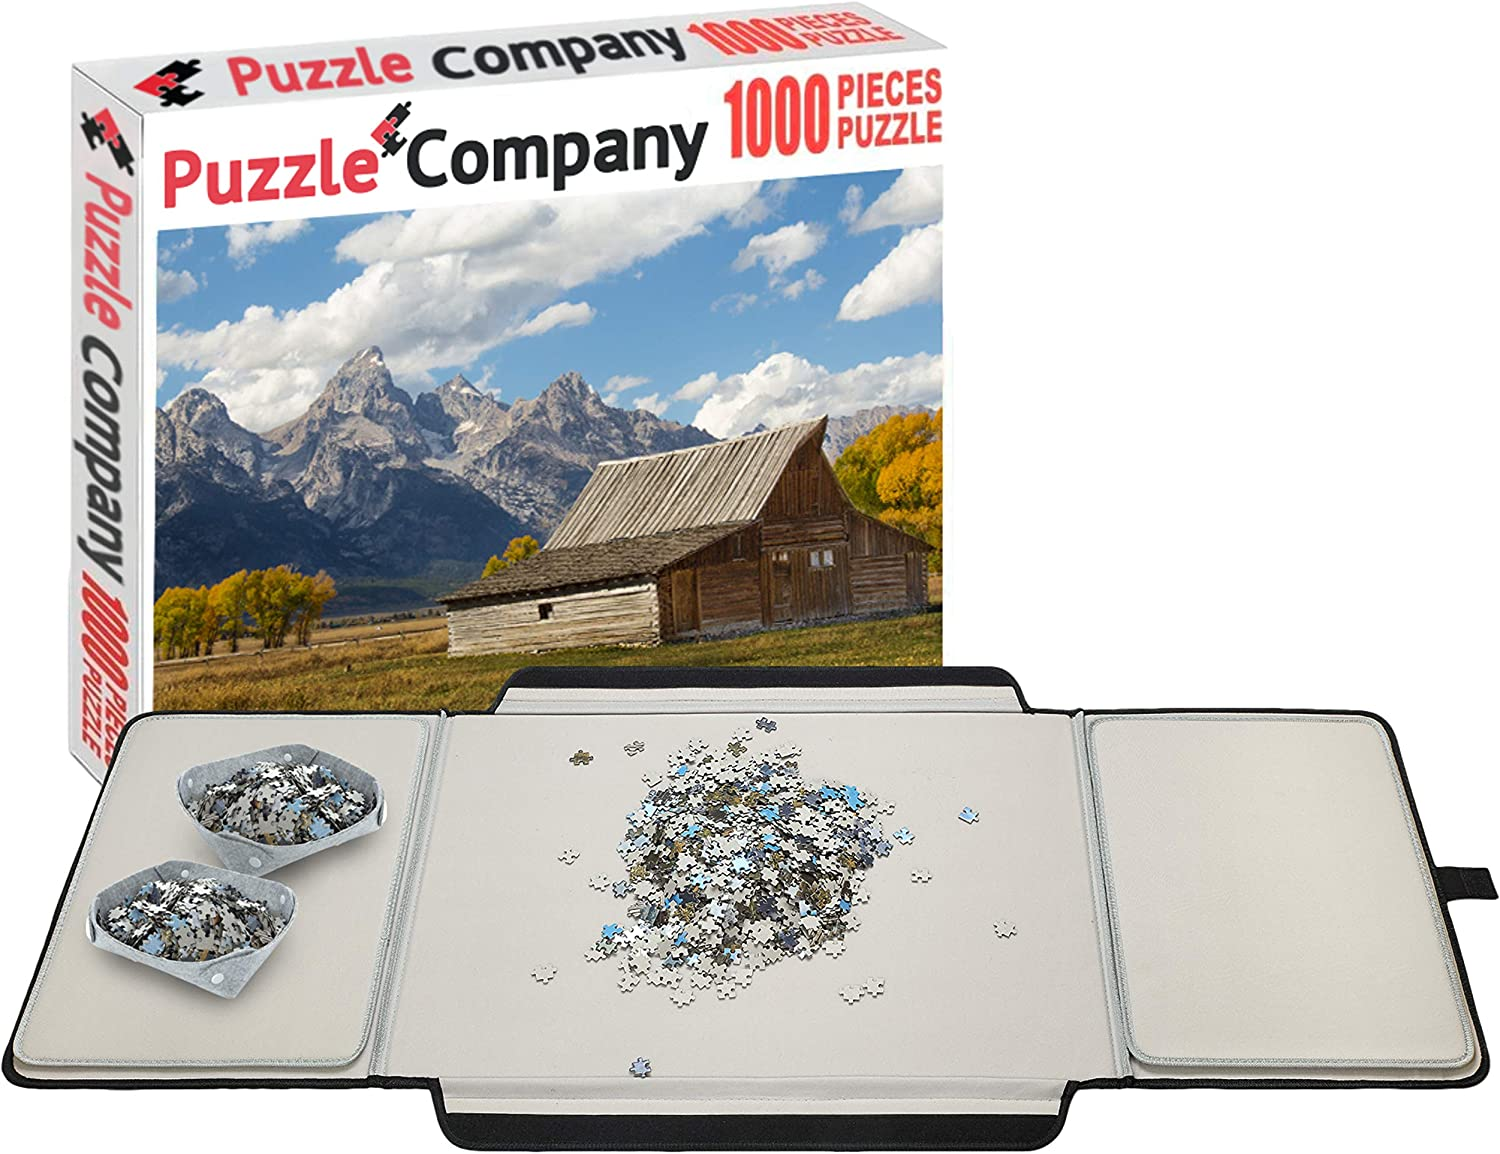 Puzzle Company Puzzle Board - 1000 Piece Jigsaw Puzzle Included – Large Puzzle Table Fits 1000 Piece Jigsaw Puzzles – Premium Puzzle Saver Includes 2X Puzzle Insert Mats and 2X Puzzle Sorting Trays: Toys & Games